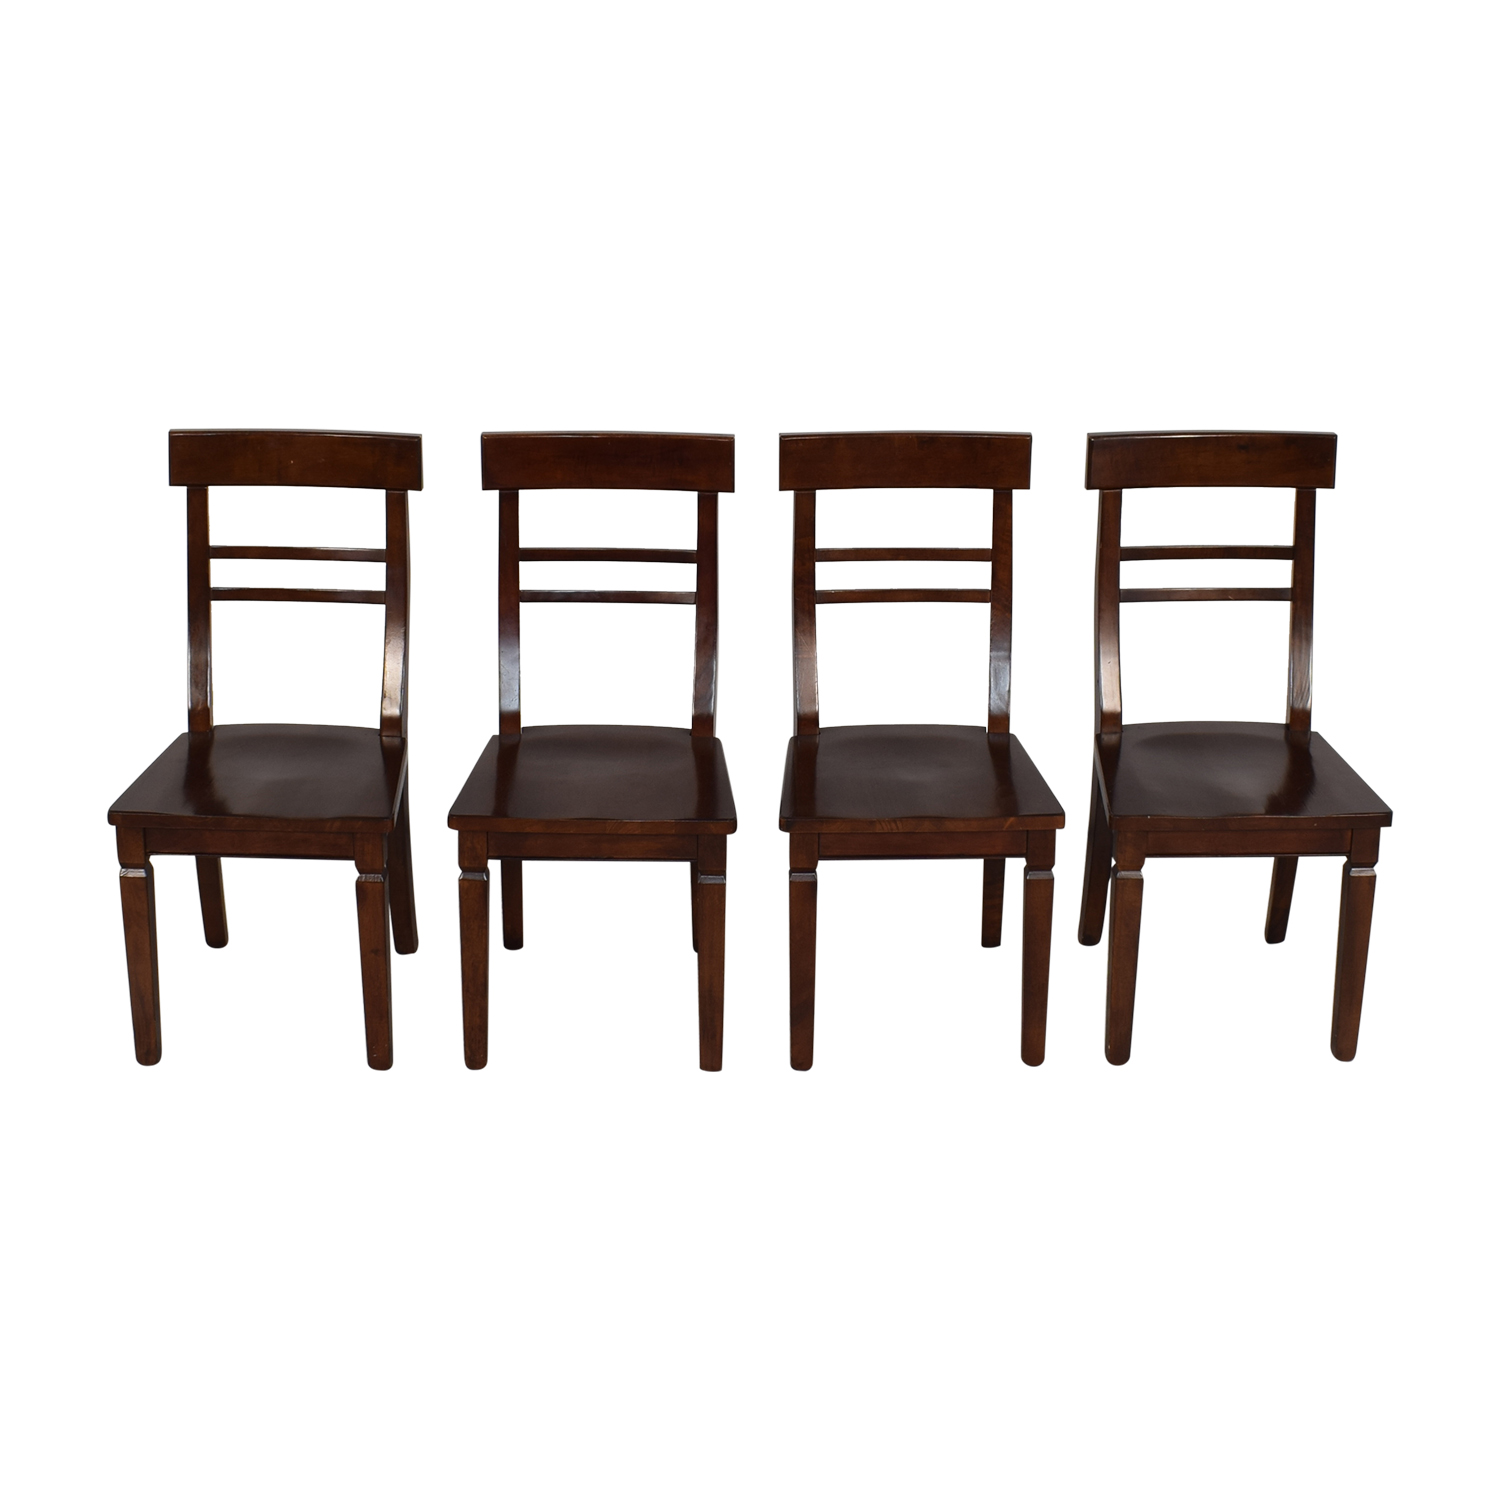 shop Crate & Barrel Dining Chairs Crate & Barrel Chairs